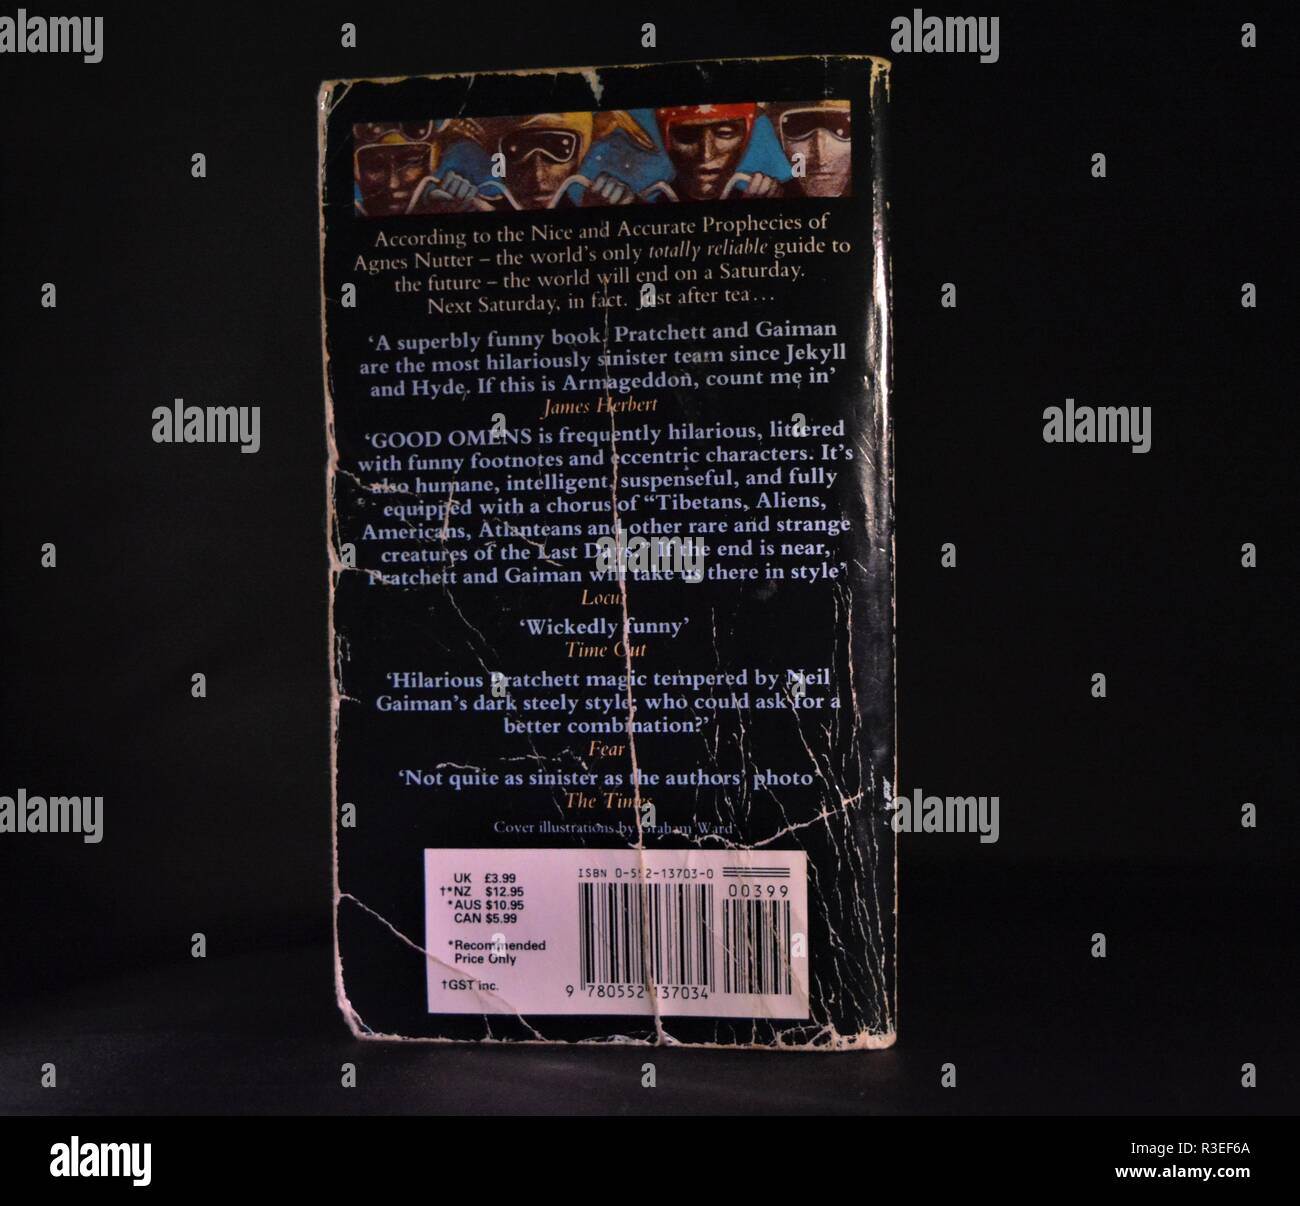 dog eared well worn paperback book , good omens, on dark background. - Stock Image